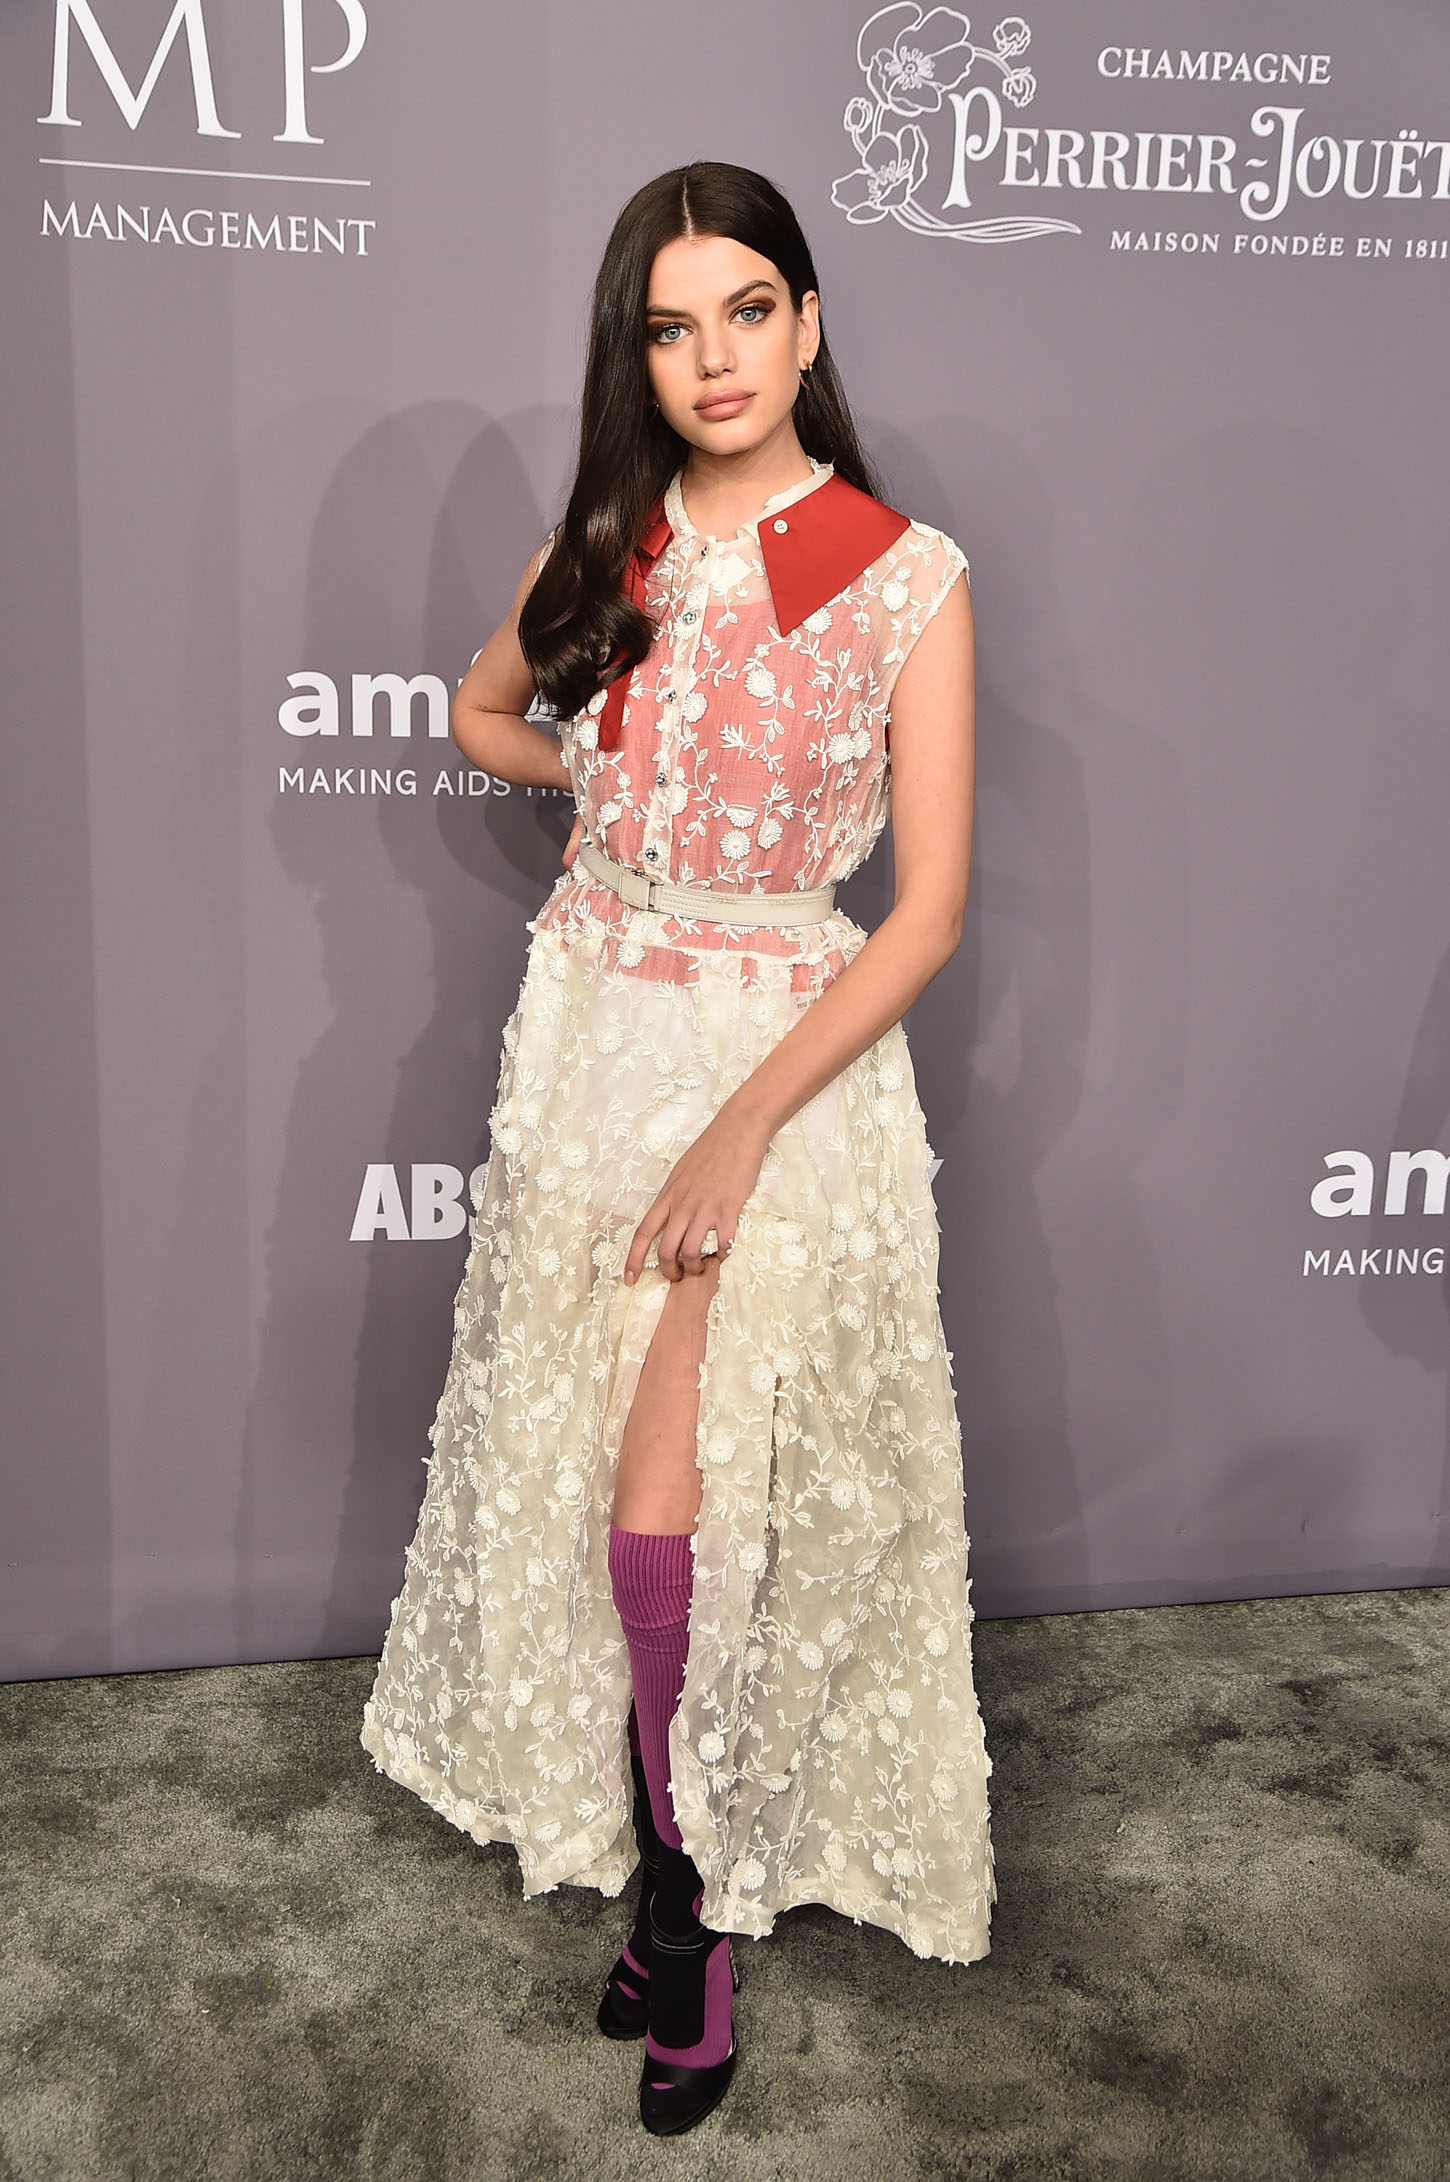 NEW YORK, NY - FEBRUARY 07:  Model Sonia Ben Ammar attends the 2018 amfAR Gala New York at Cipriani Wall Street on February 7, 2018 in New York City.  (Photo by Theo Wargo/Getty Images)